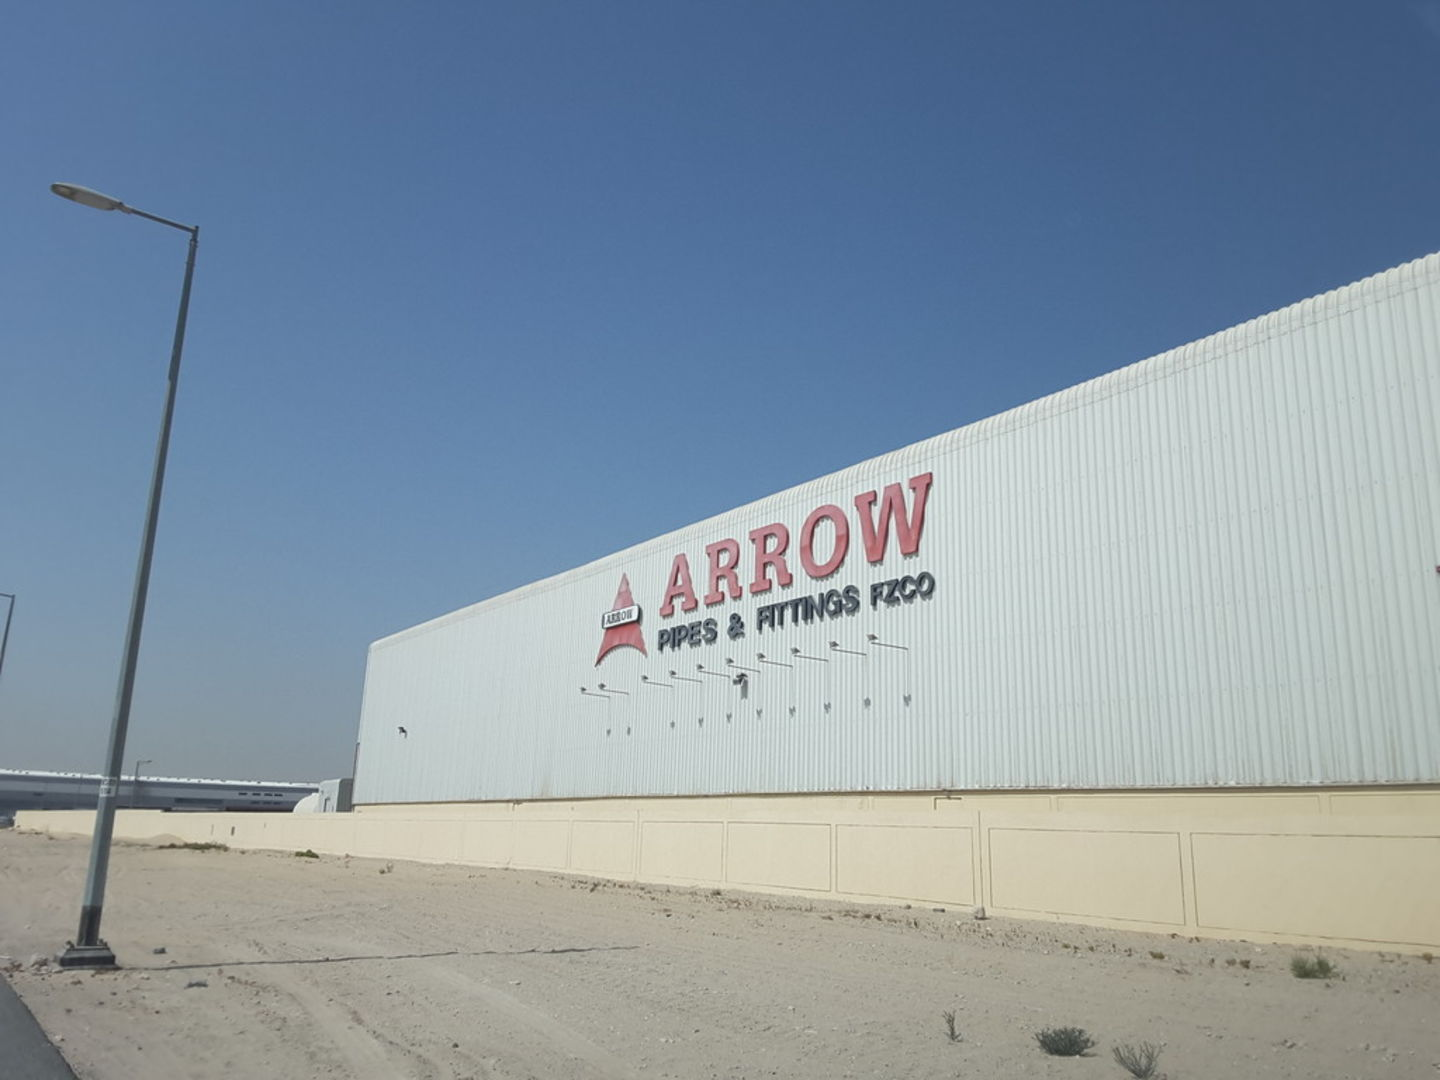 Arrow Pipes & Fittings Fzco, (Oil & Gas Companies) in Jebel